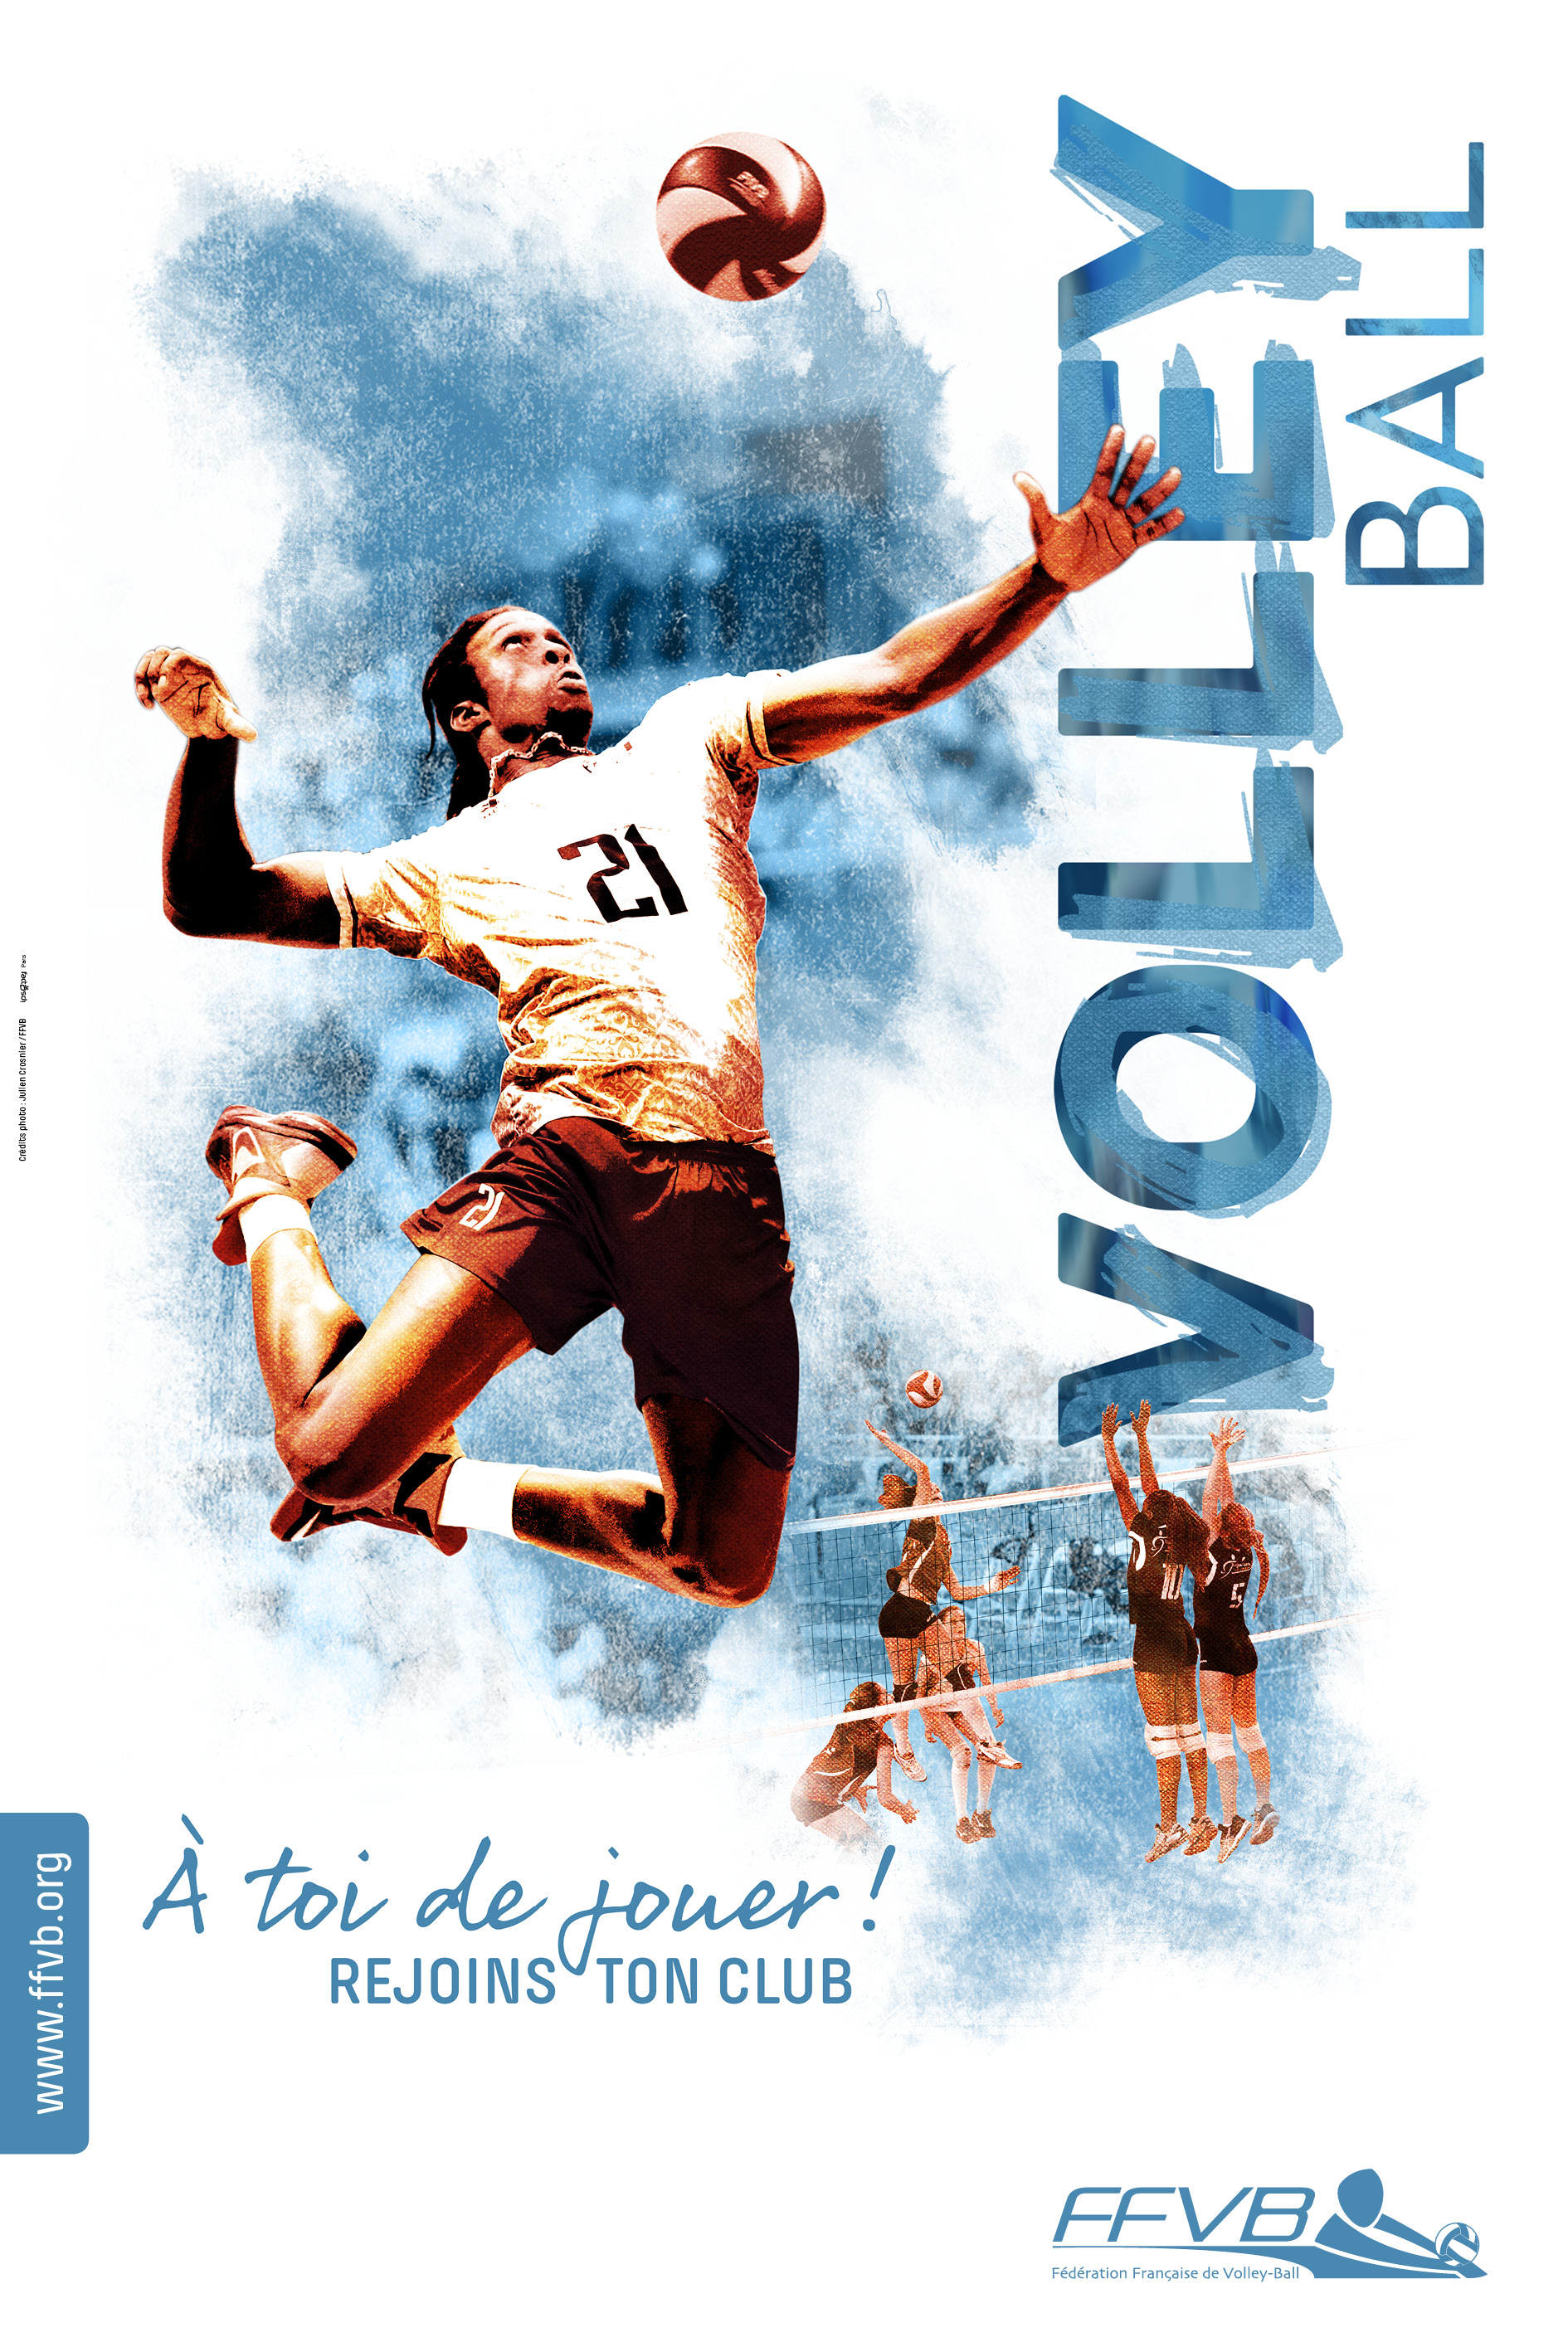 FFVolley-Campagne affiches rentrée clubs